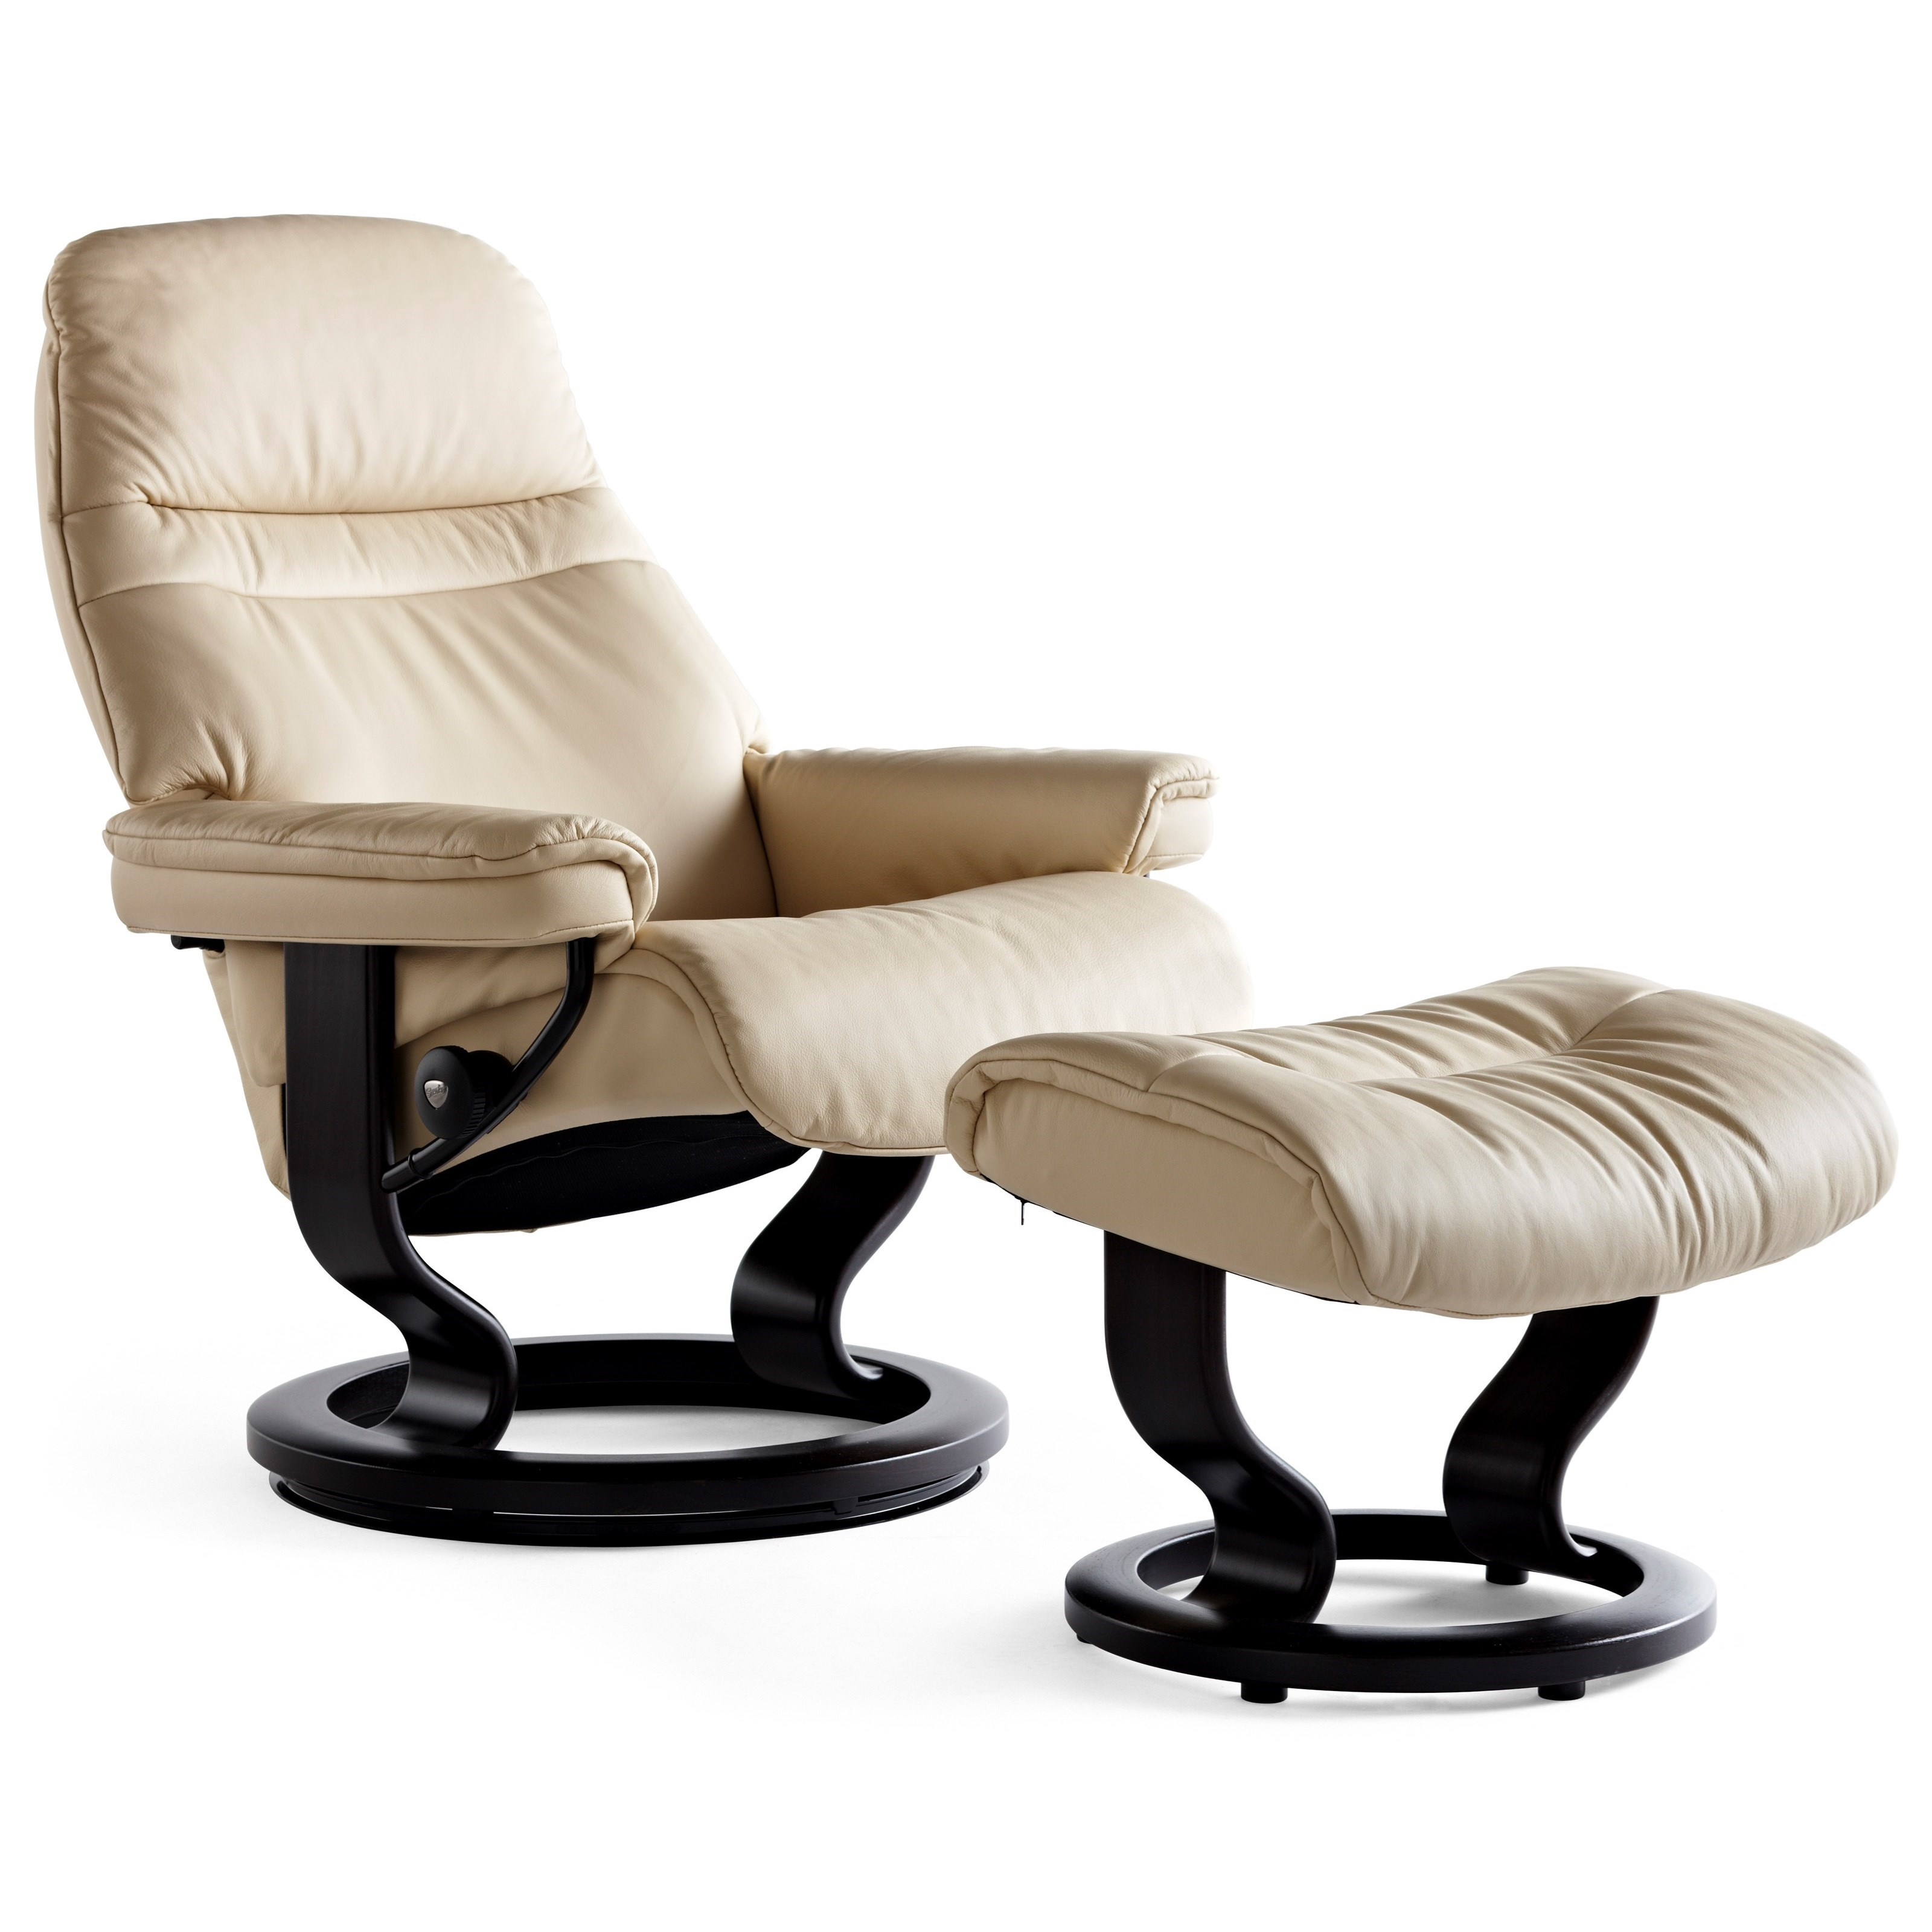 Sunrise Medium Chair & Ottoman with Classic Base by Stressless at Virginia Furniture Market